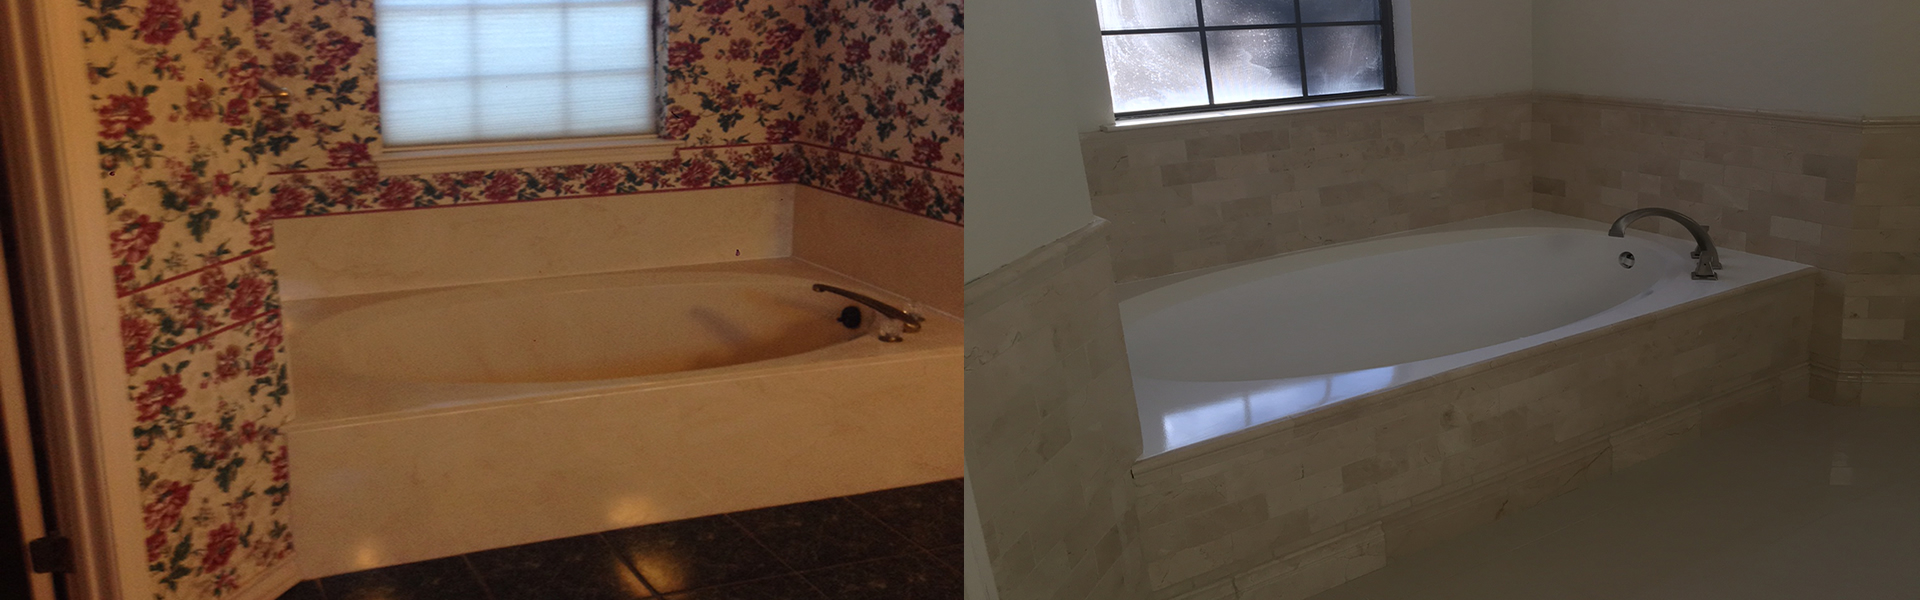 dallas bathtubs refinishing